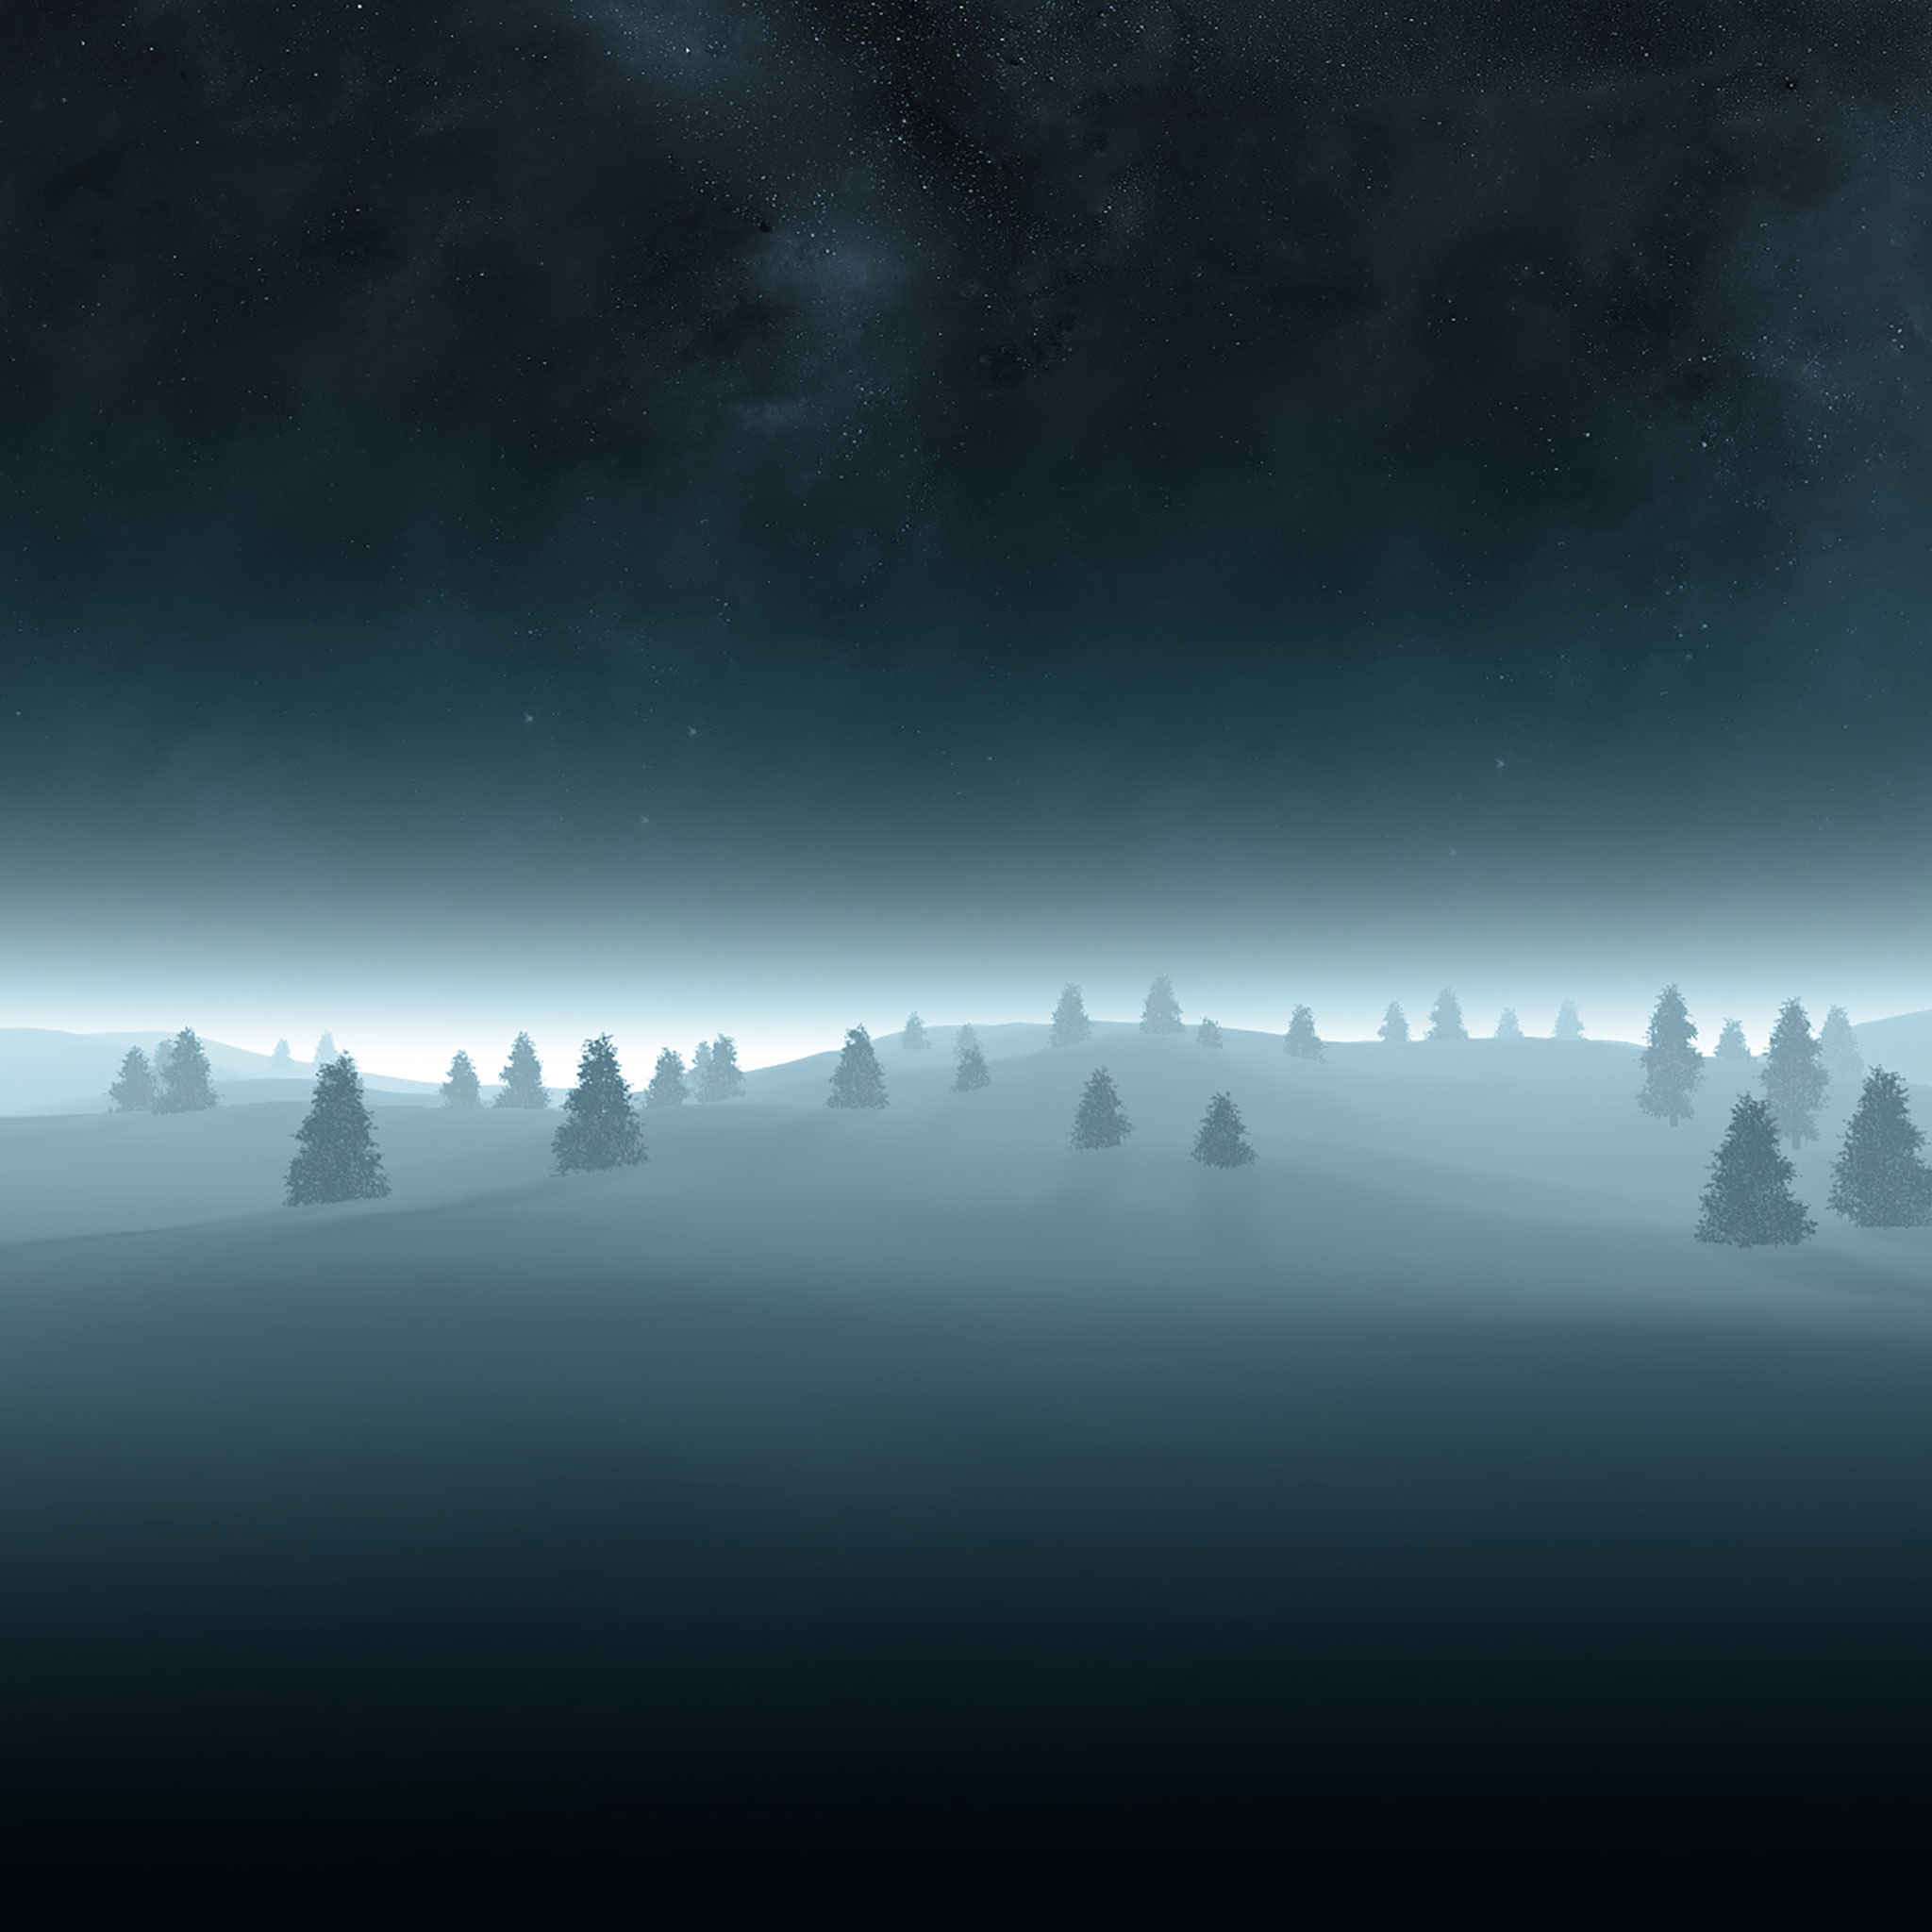 Falling Snow Live Wallpaper For Pc 10 Of The Best Ipad Winter Wallpapers Brand Thunder